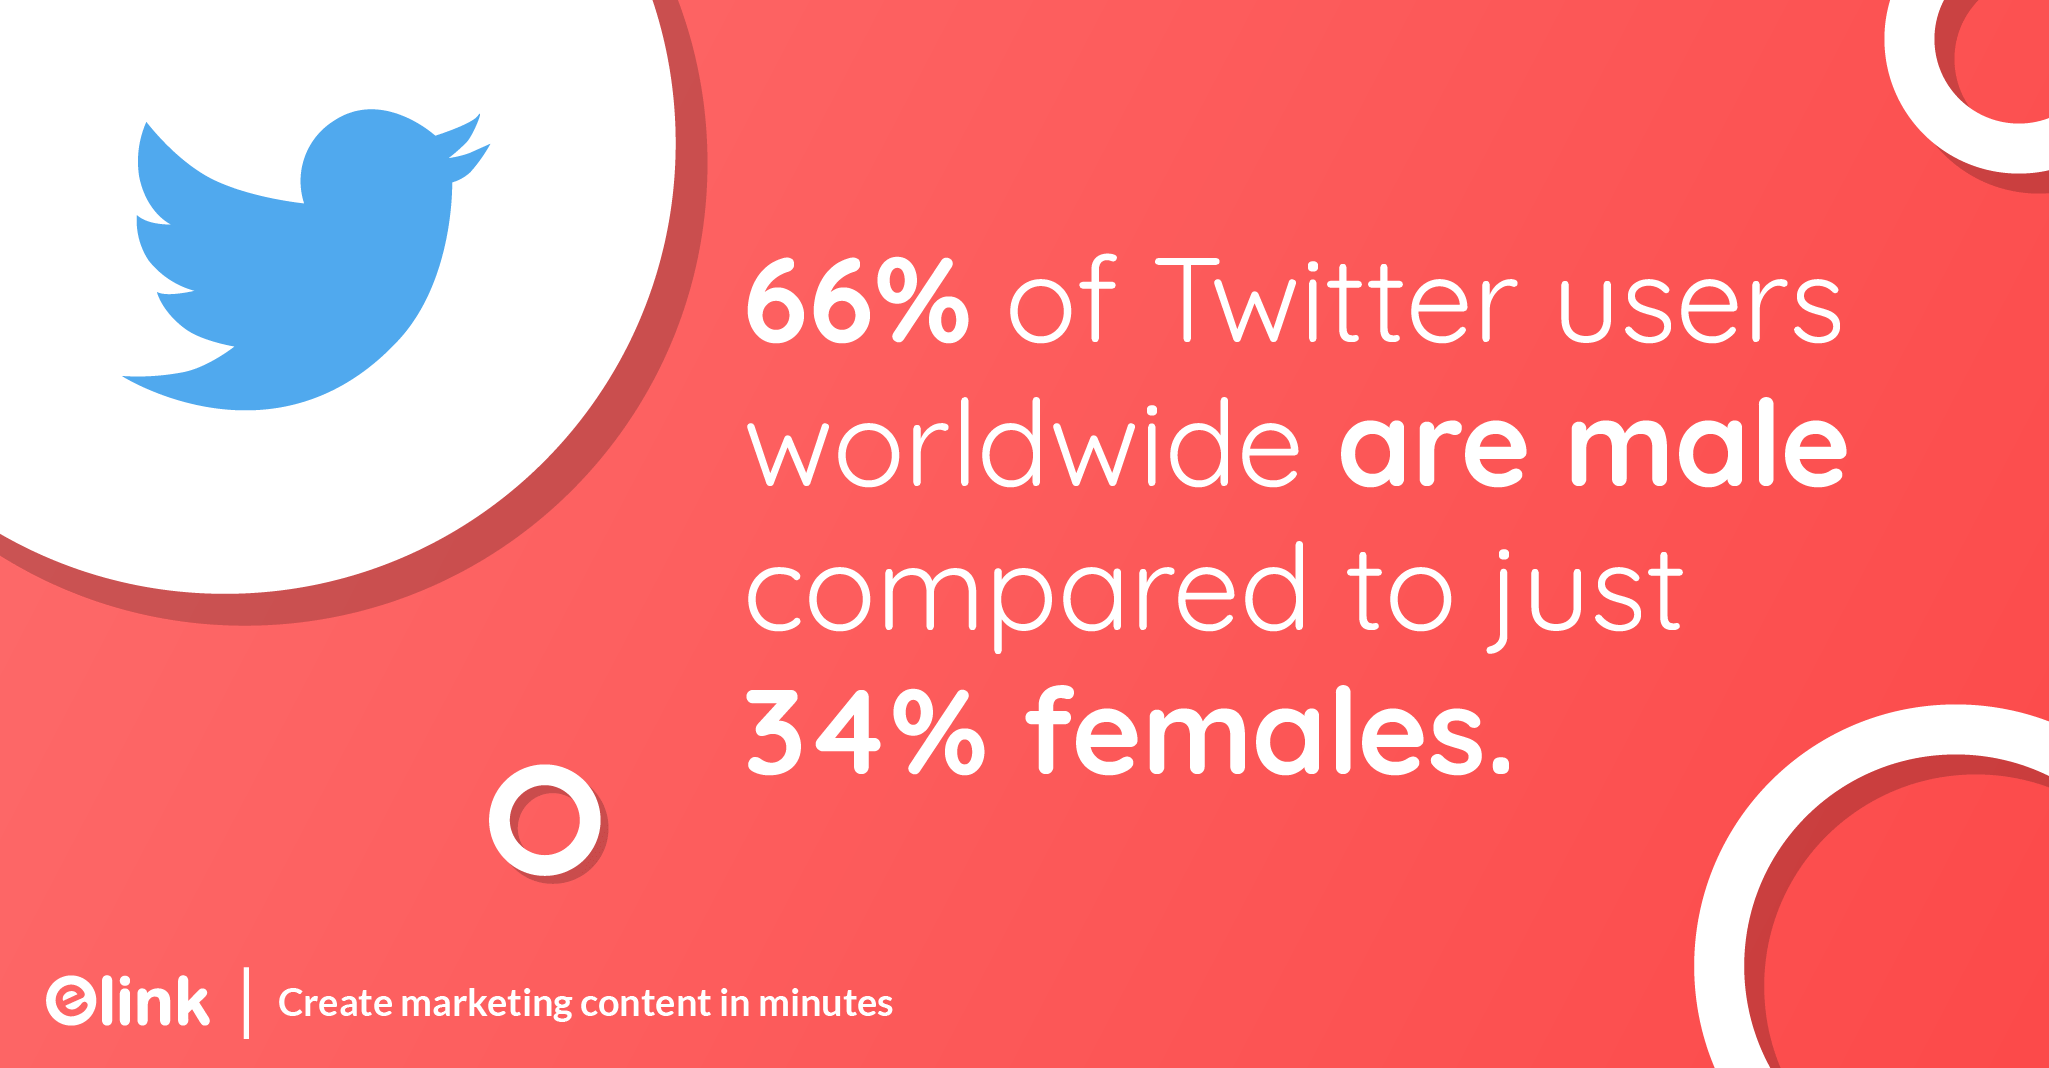 66 percent of Twitter users worldwide are male compared to just 34 percent females.